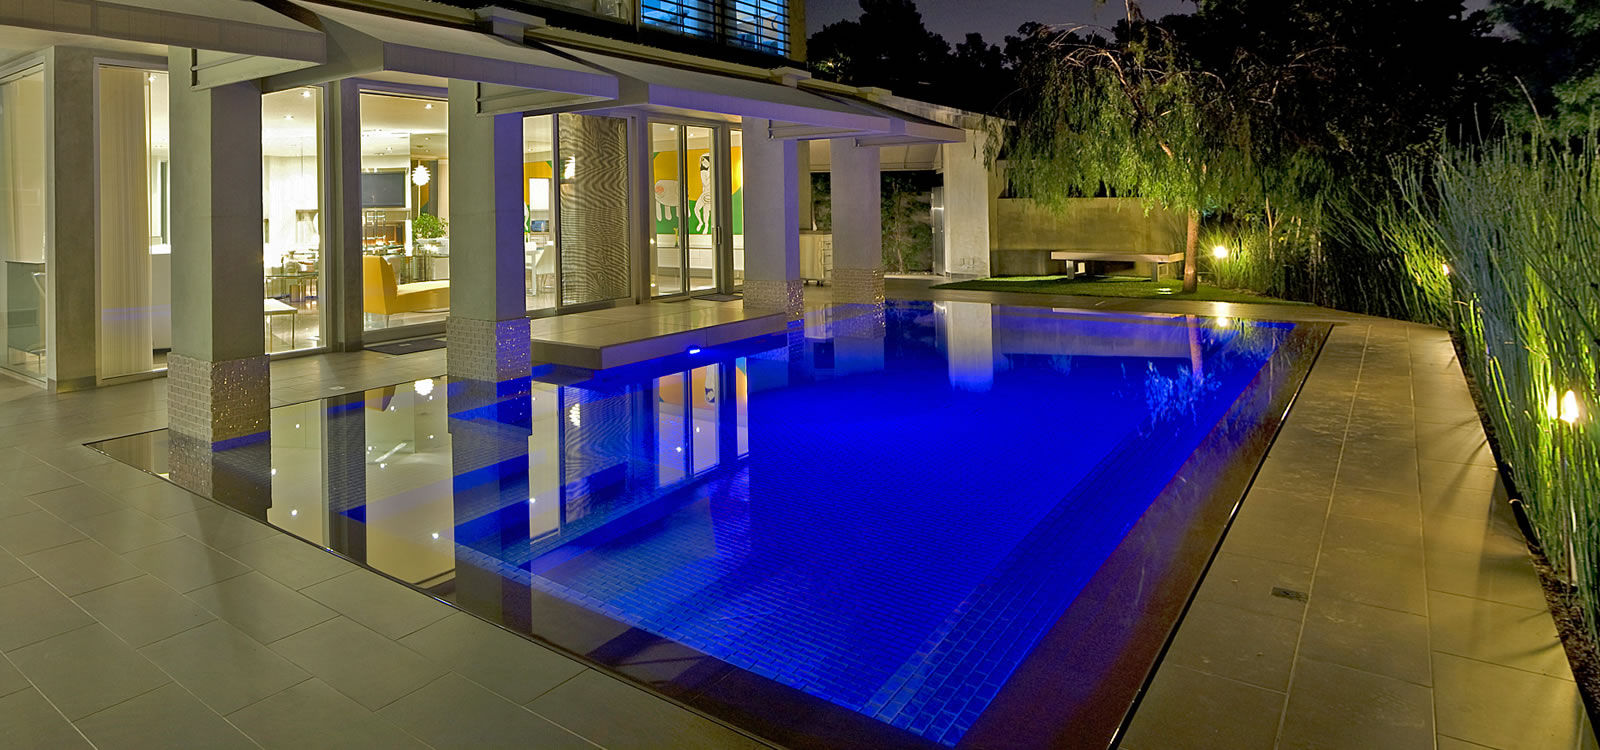 southern california award winning custom pool designer - Custom Swimming Pool Designs